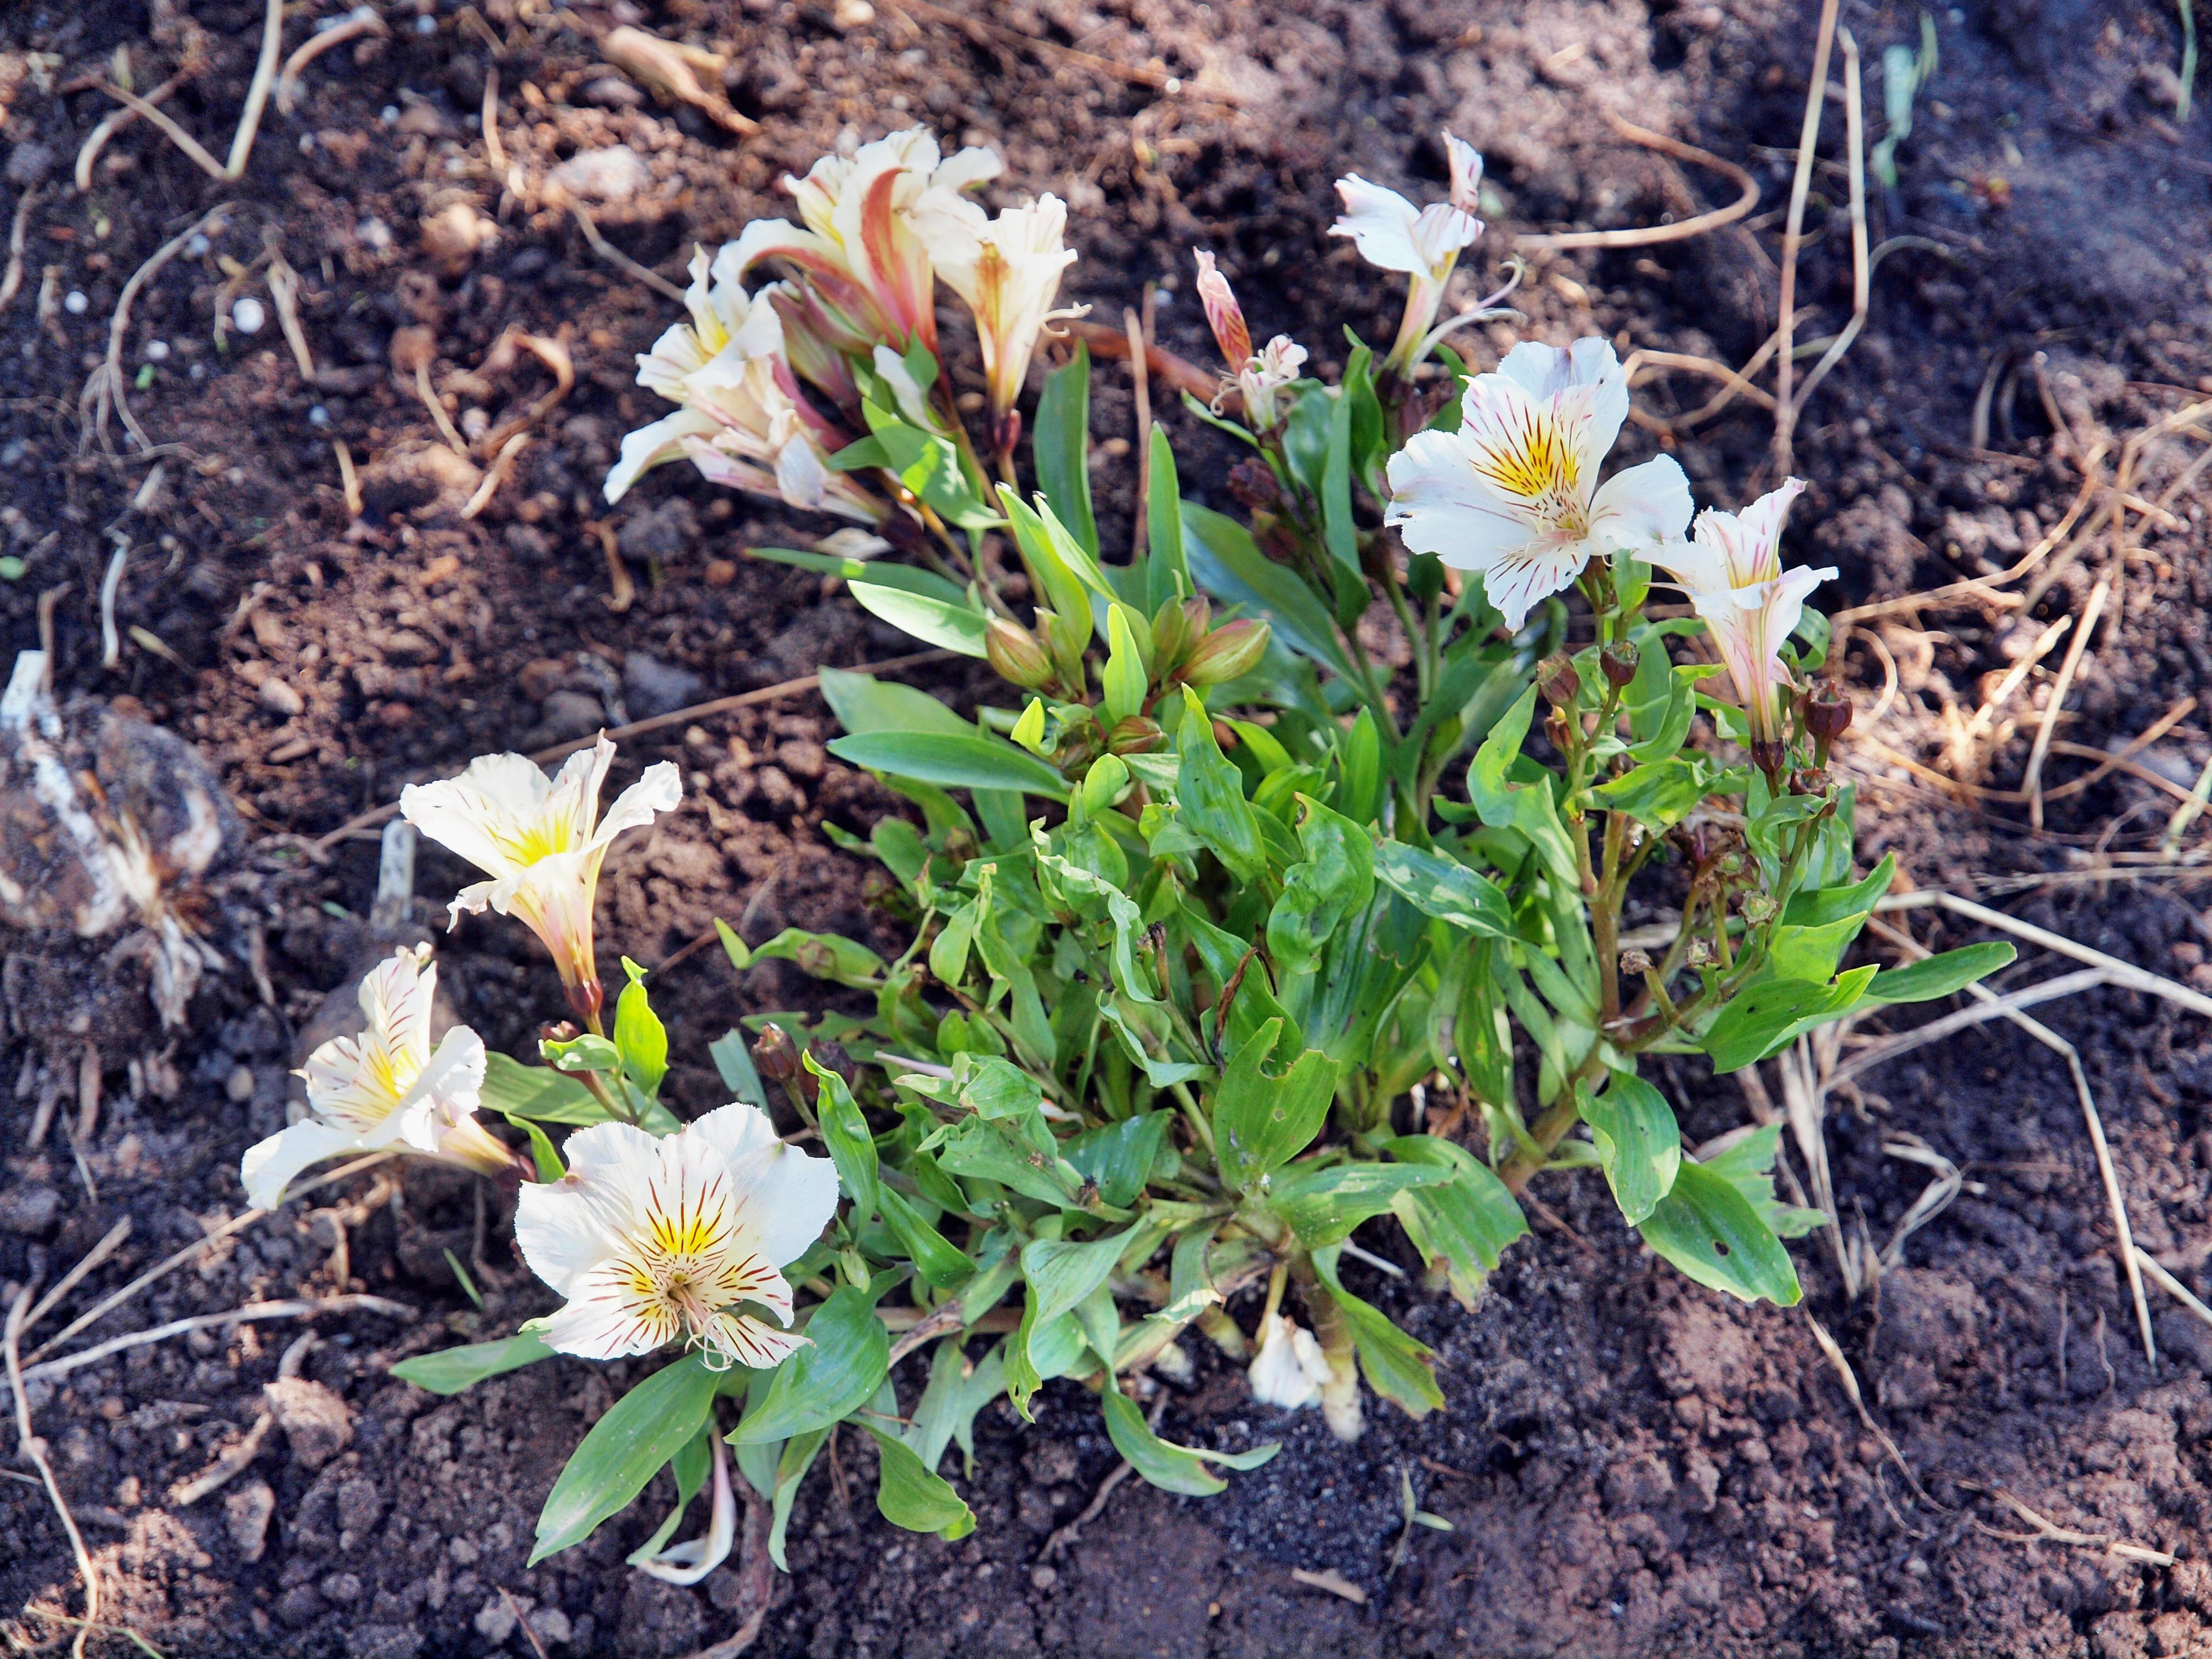 This should be Alstroemeria.jpeg.  Is it missing?